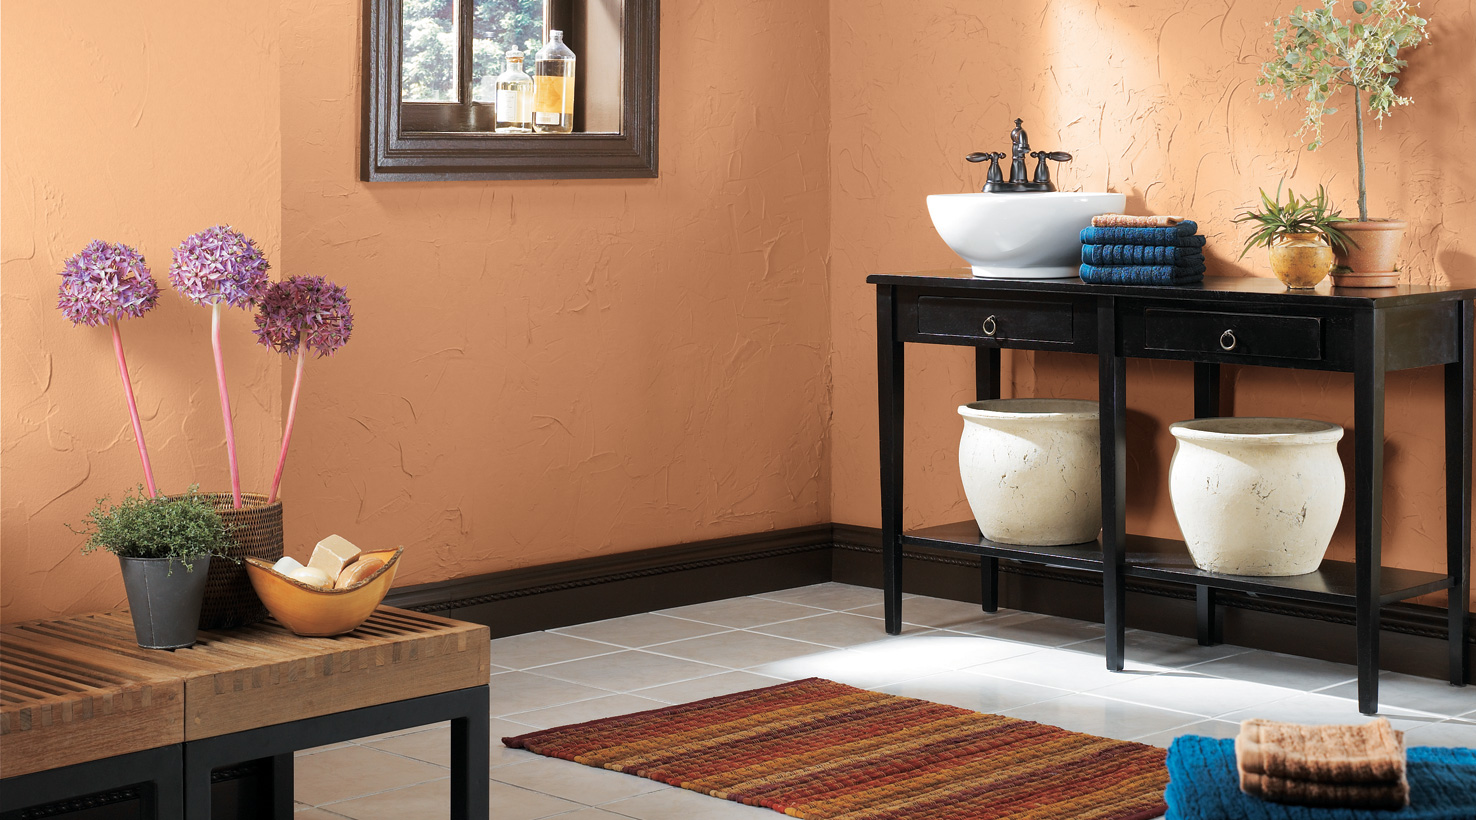 bathroom color inspiration gallery sherwin williams 24102